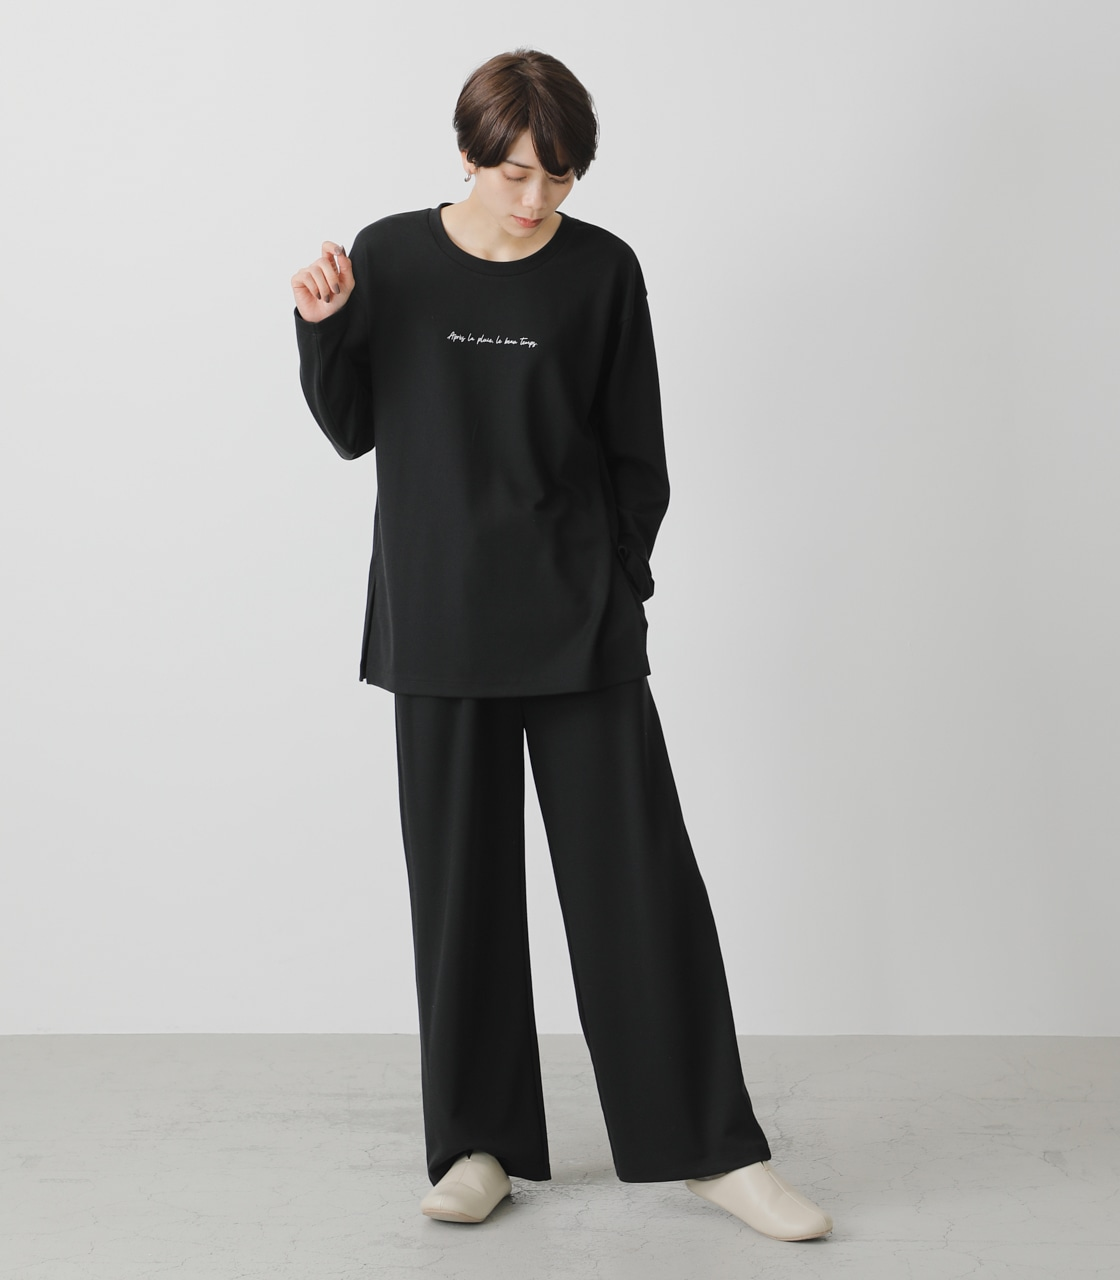 T/H PRINT LONG TEE/T/HプリントロングTシャツ 詳細画像 BLK 4